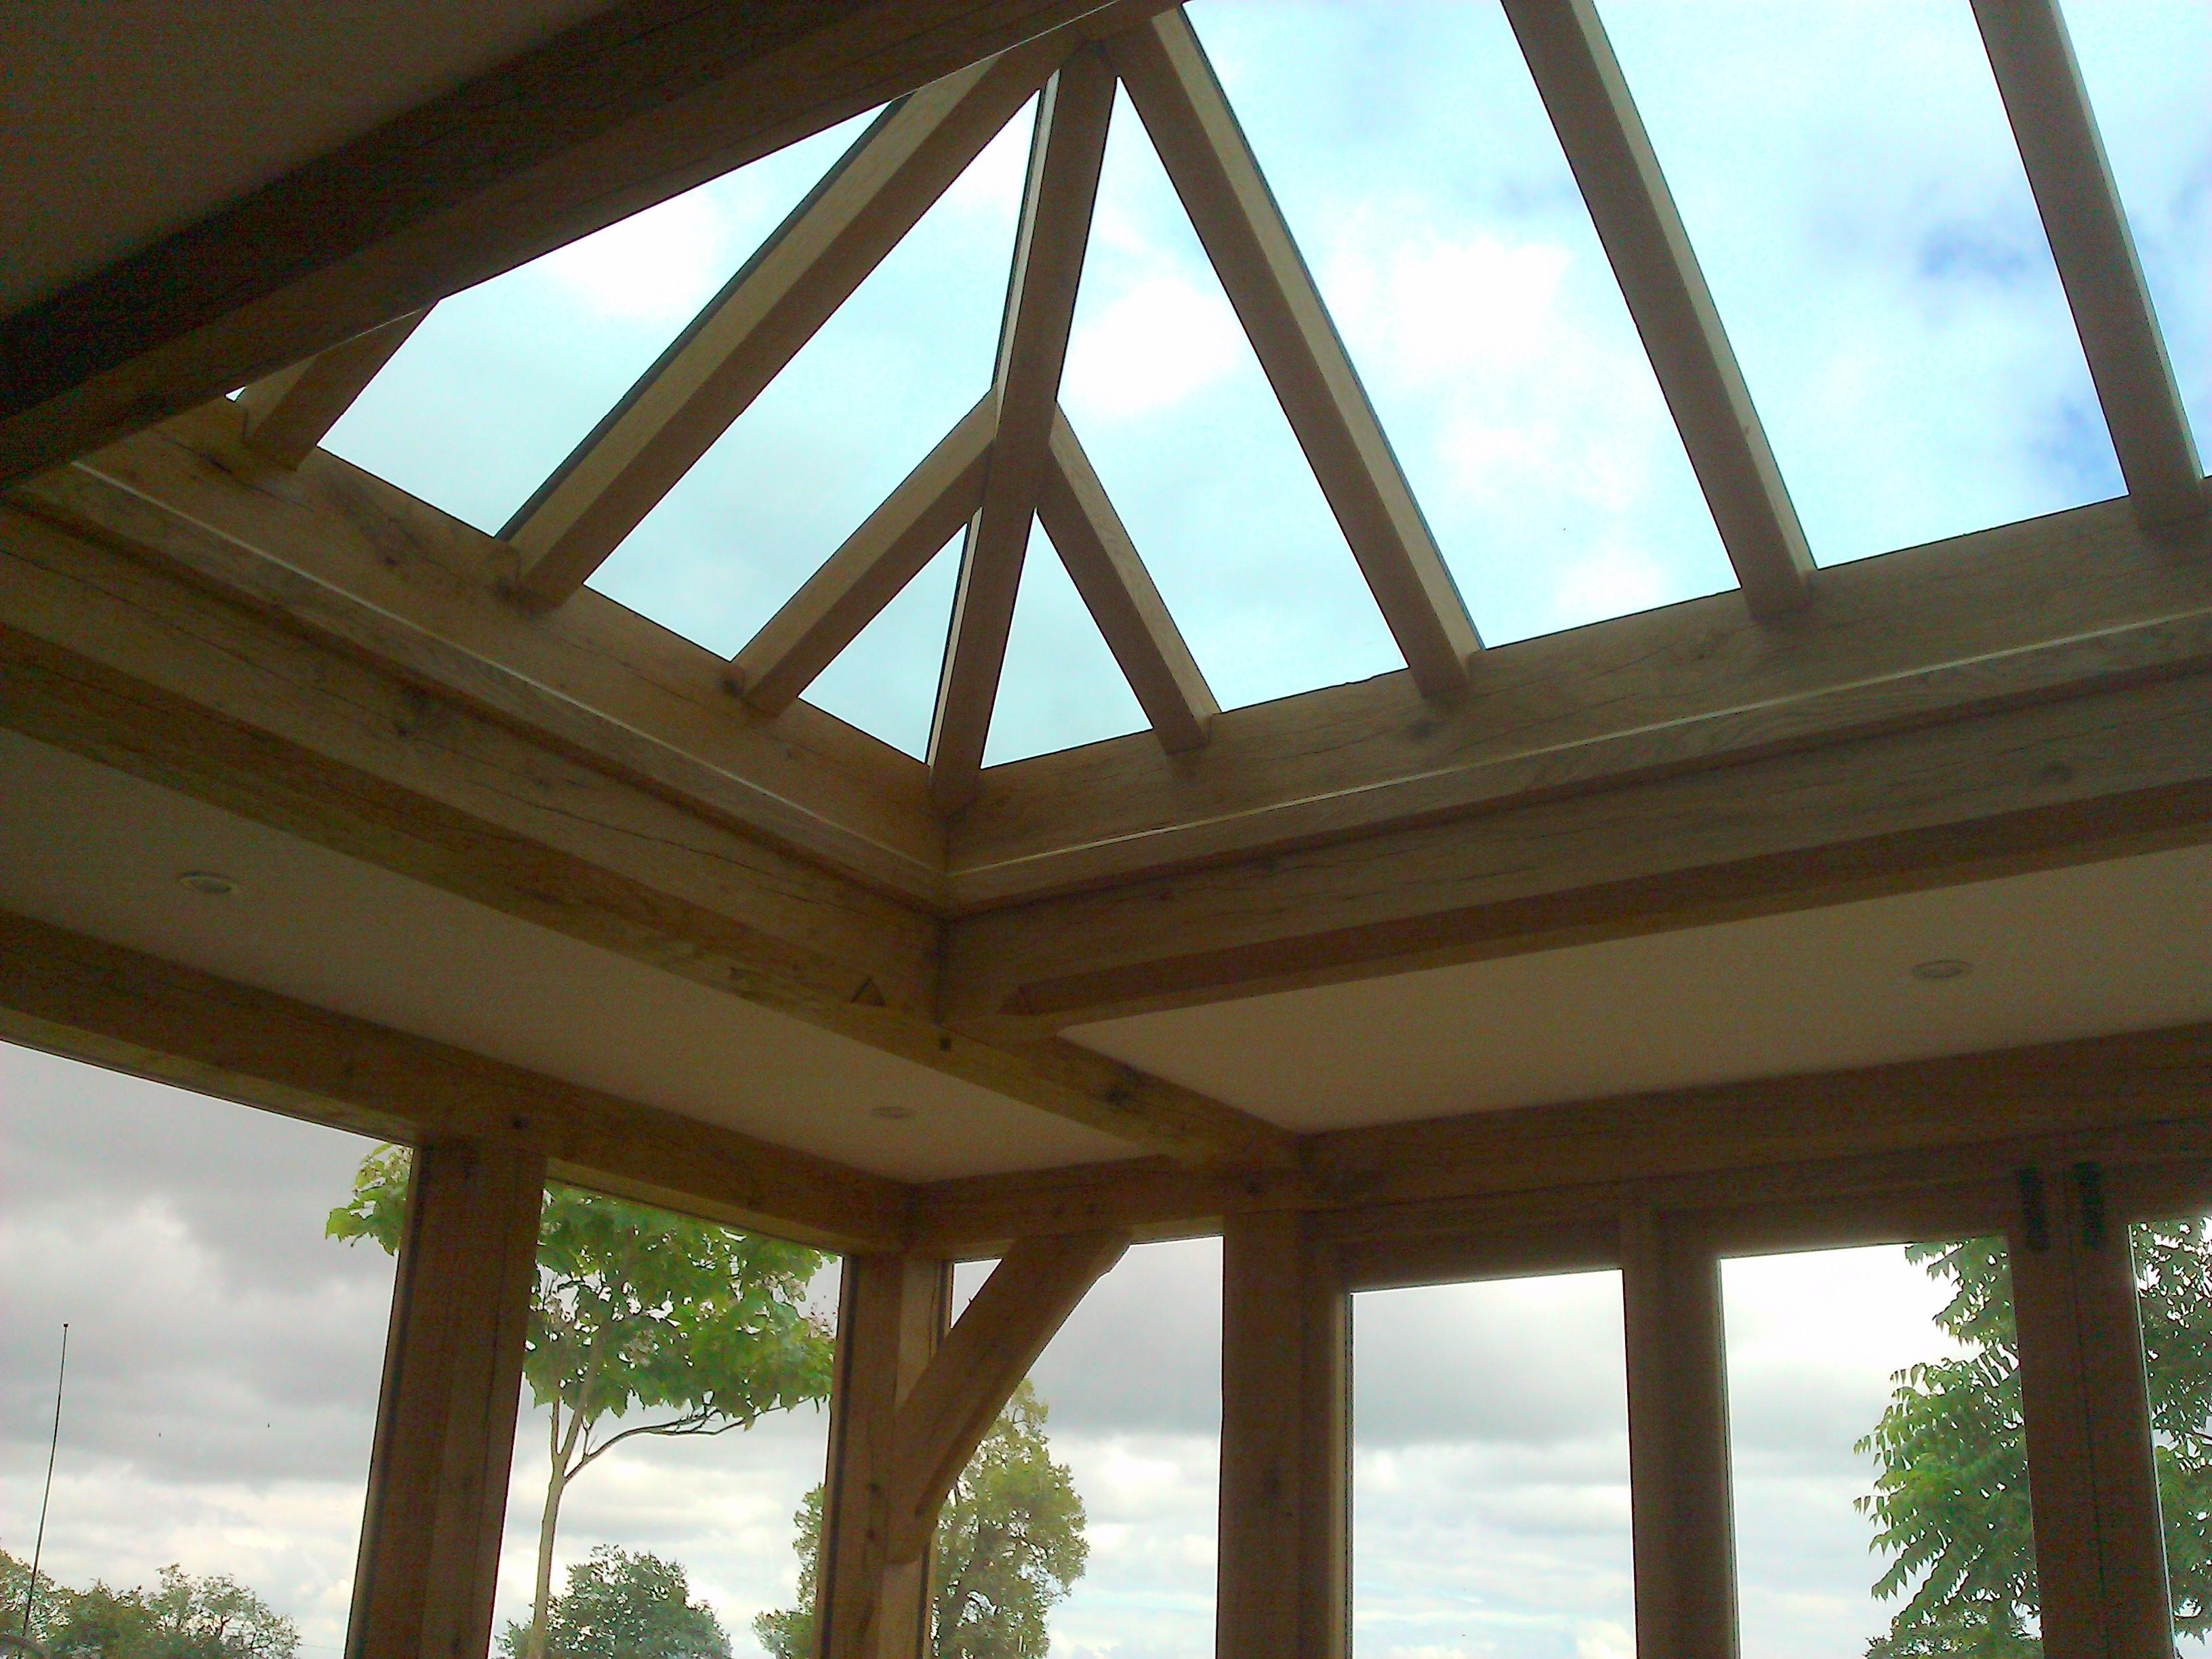 Internal-shot-from-inside-an-oak-framed-orangery